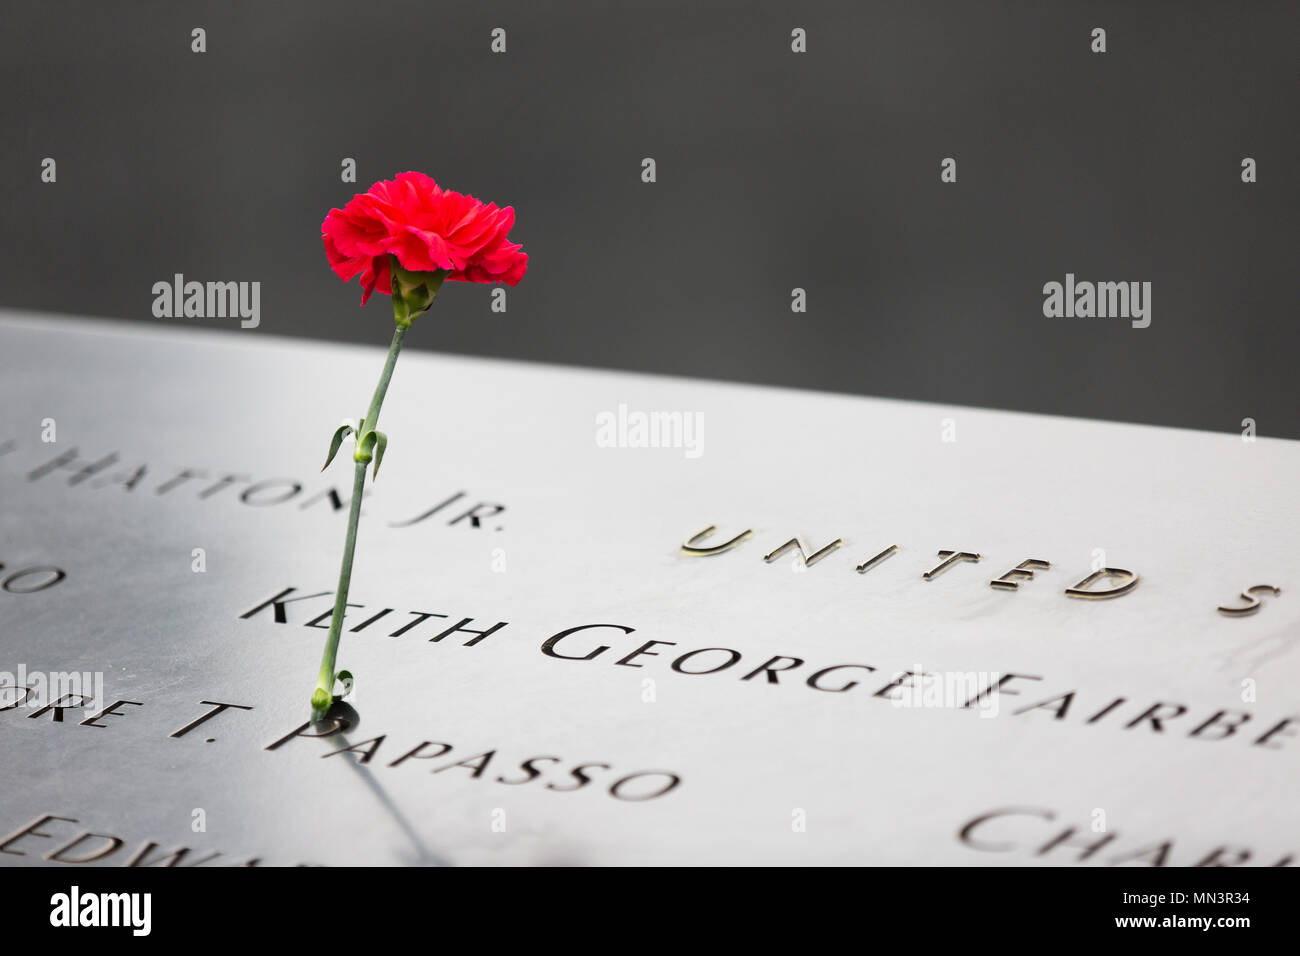 a-single-red-carnation-in-tribute-to-one-of-the-victims-of-the-11-september-2001-attack-the-911-memorial-pools-downtown-new-york-new-york-city-usa-MN3R34.jpg